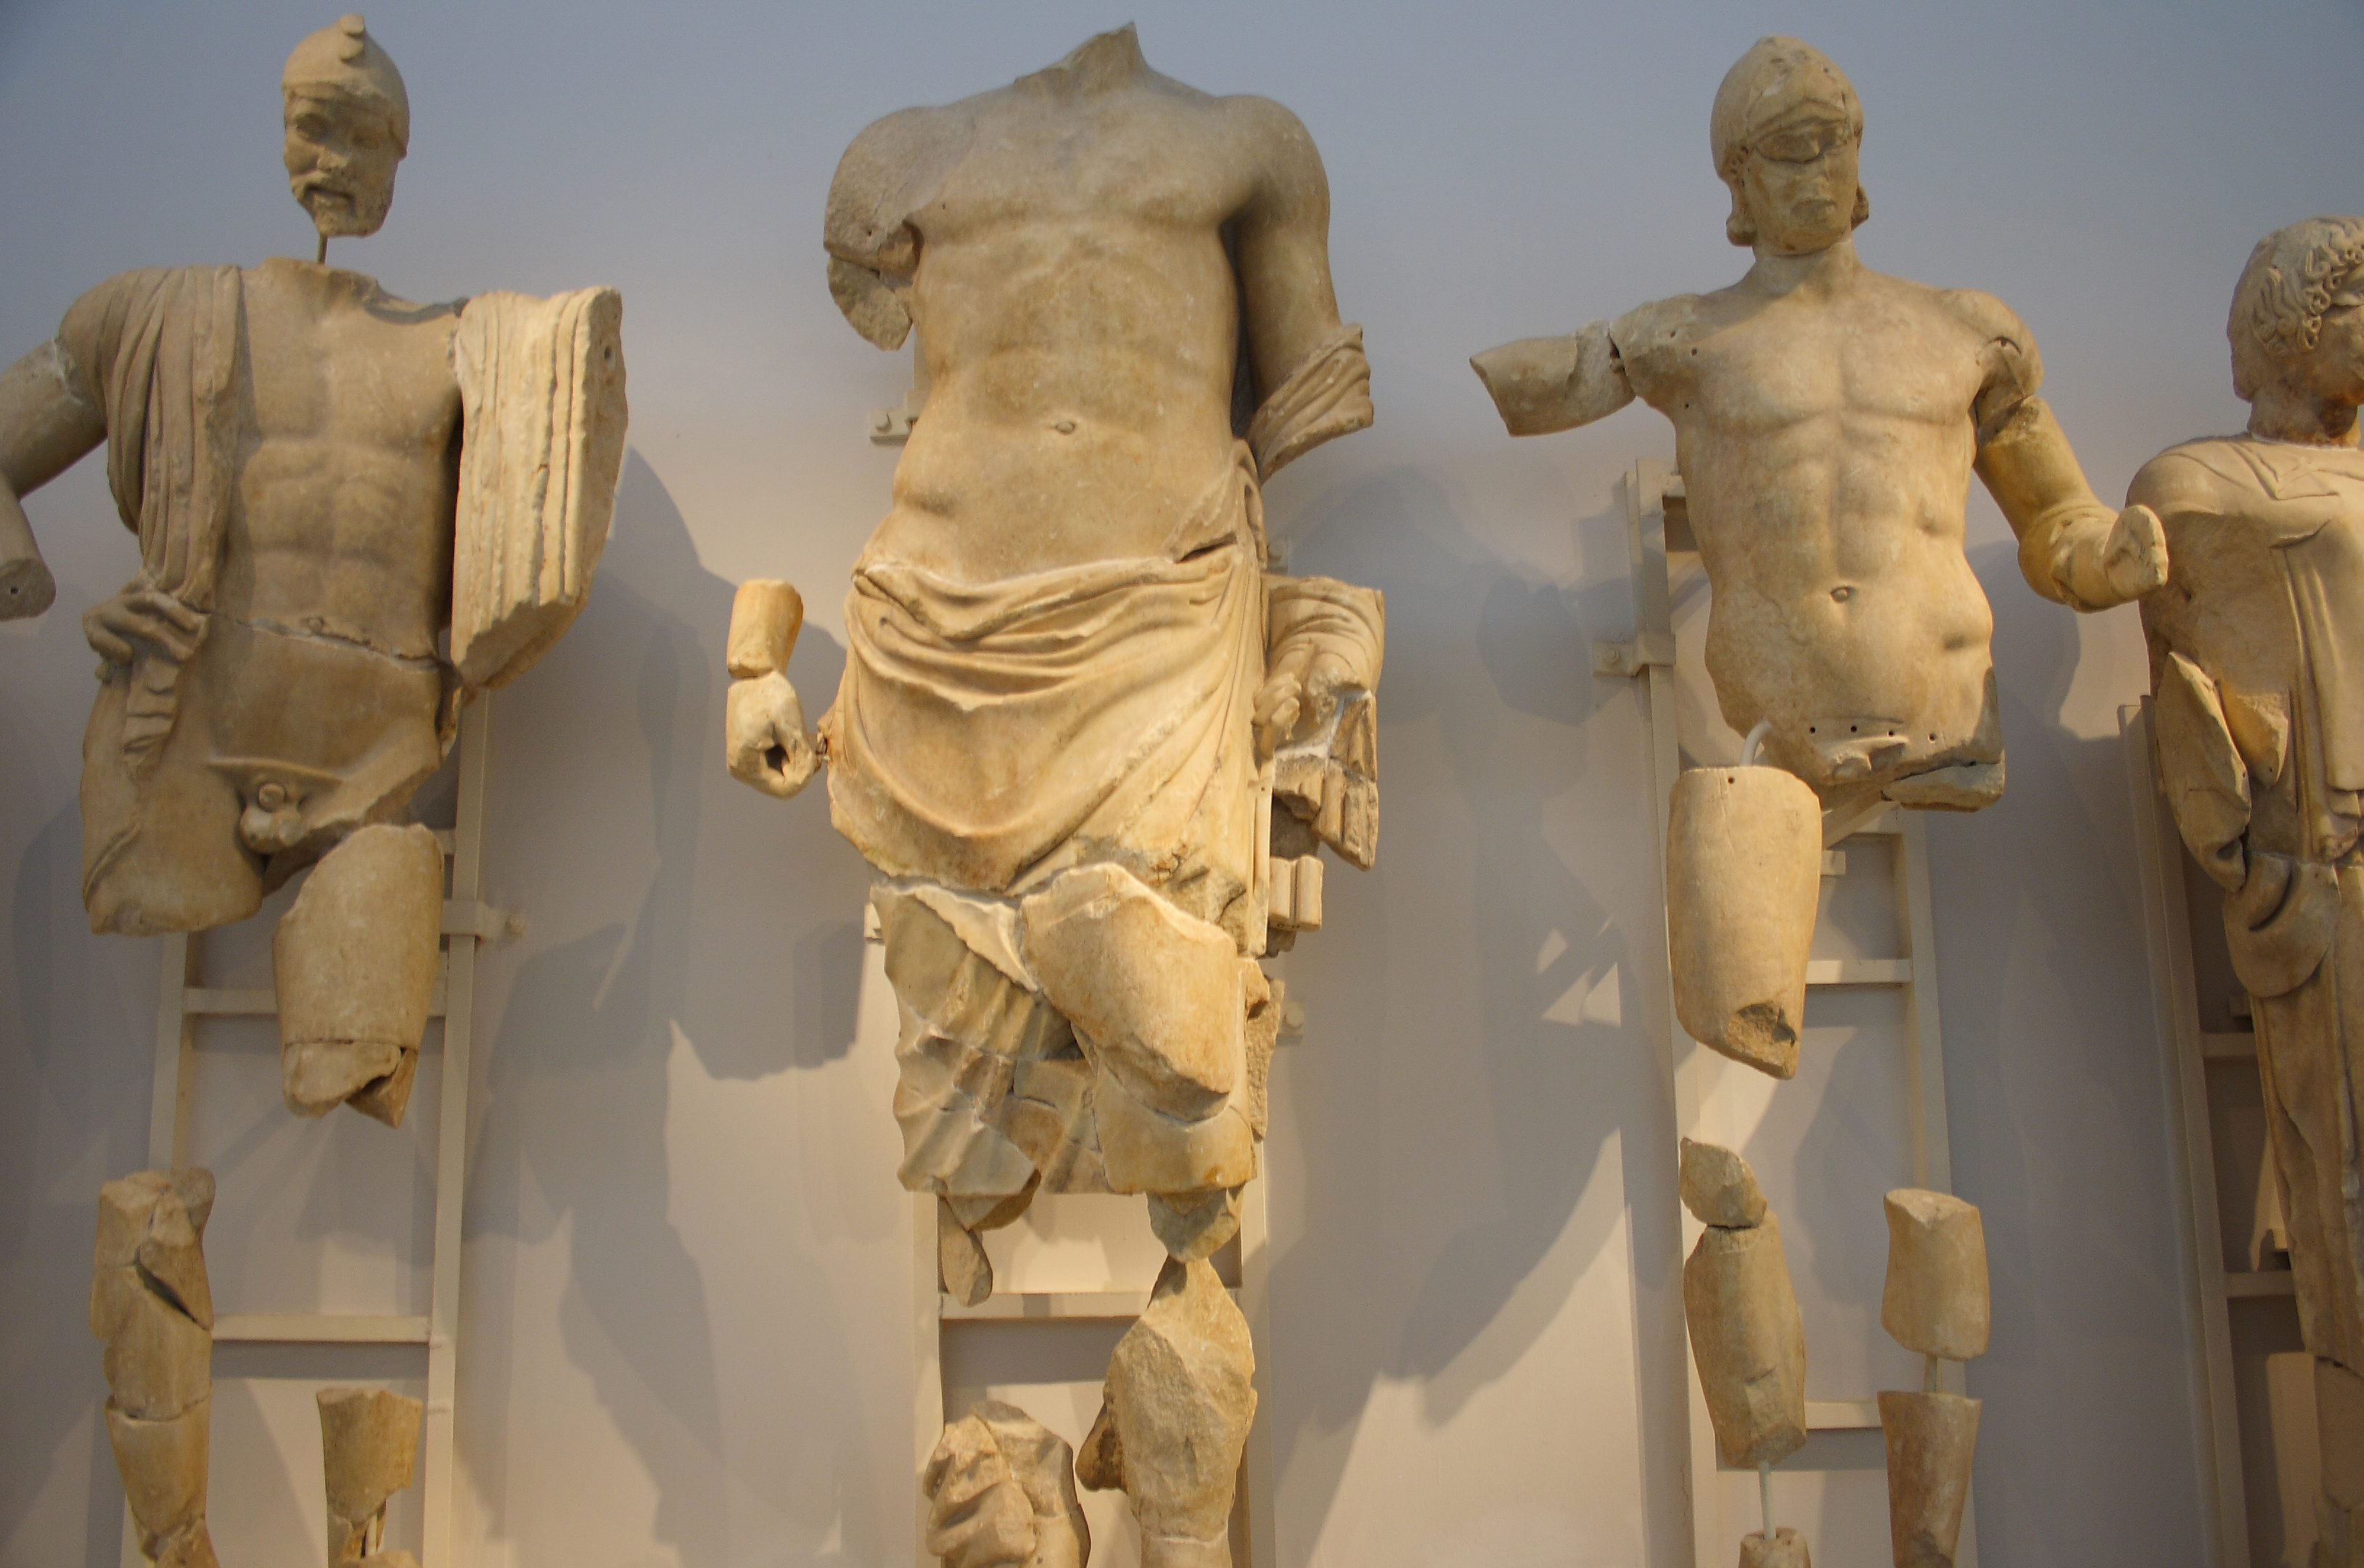 4 statues that have been fractured are reassembled against a wall. All of these statues are white marble men sculpted in the classical style.